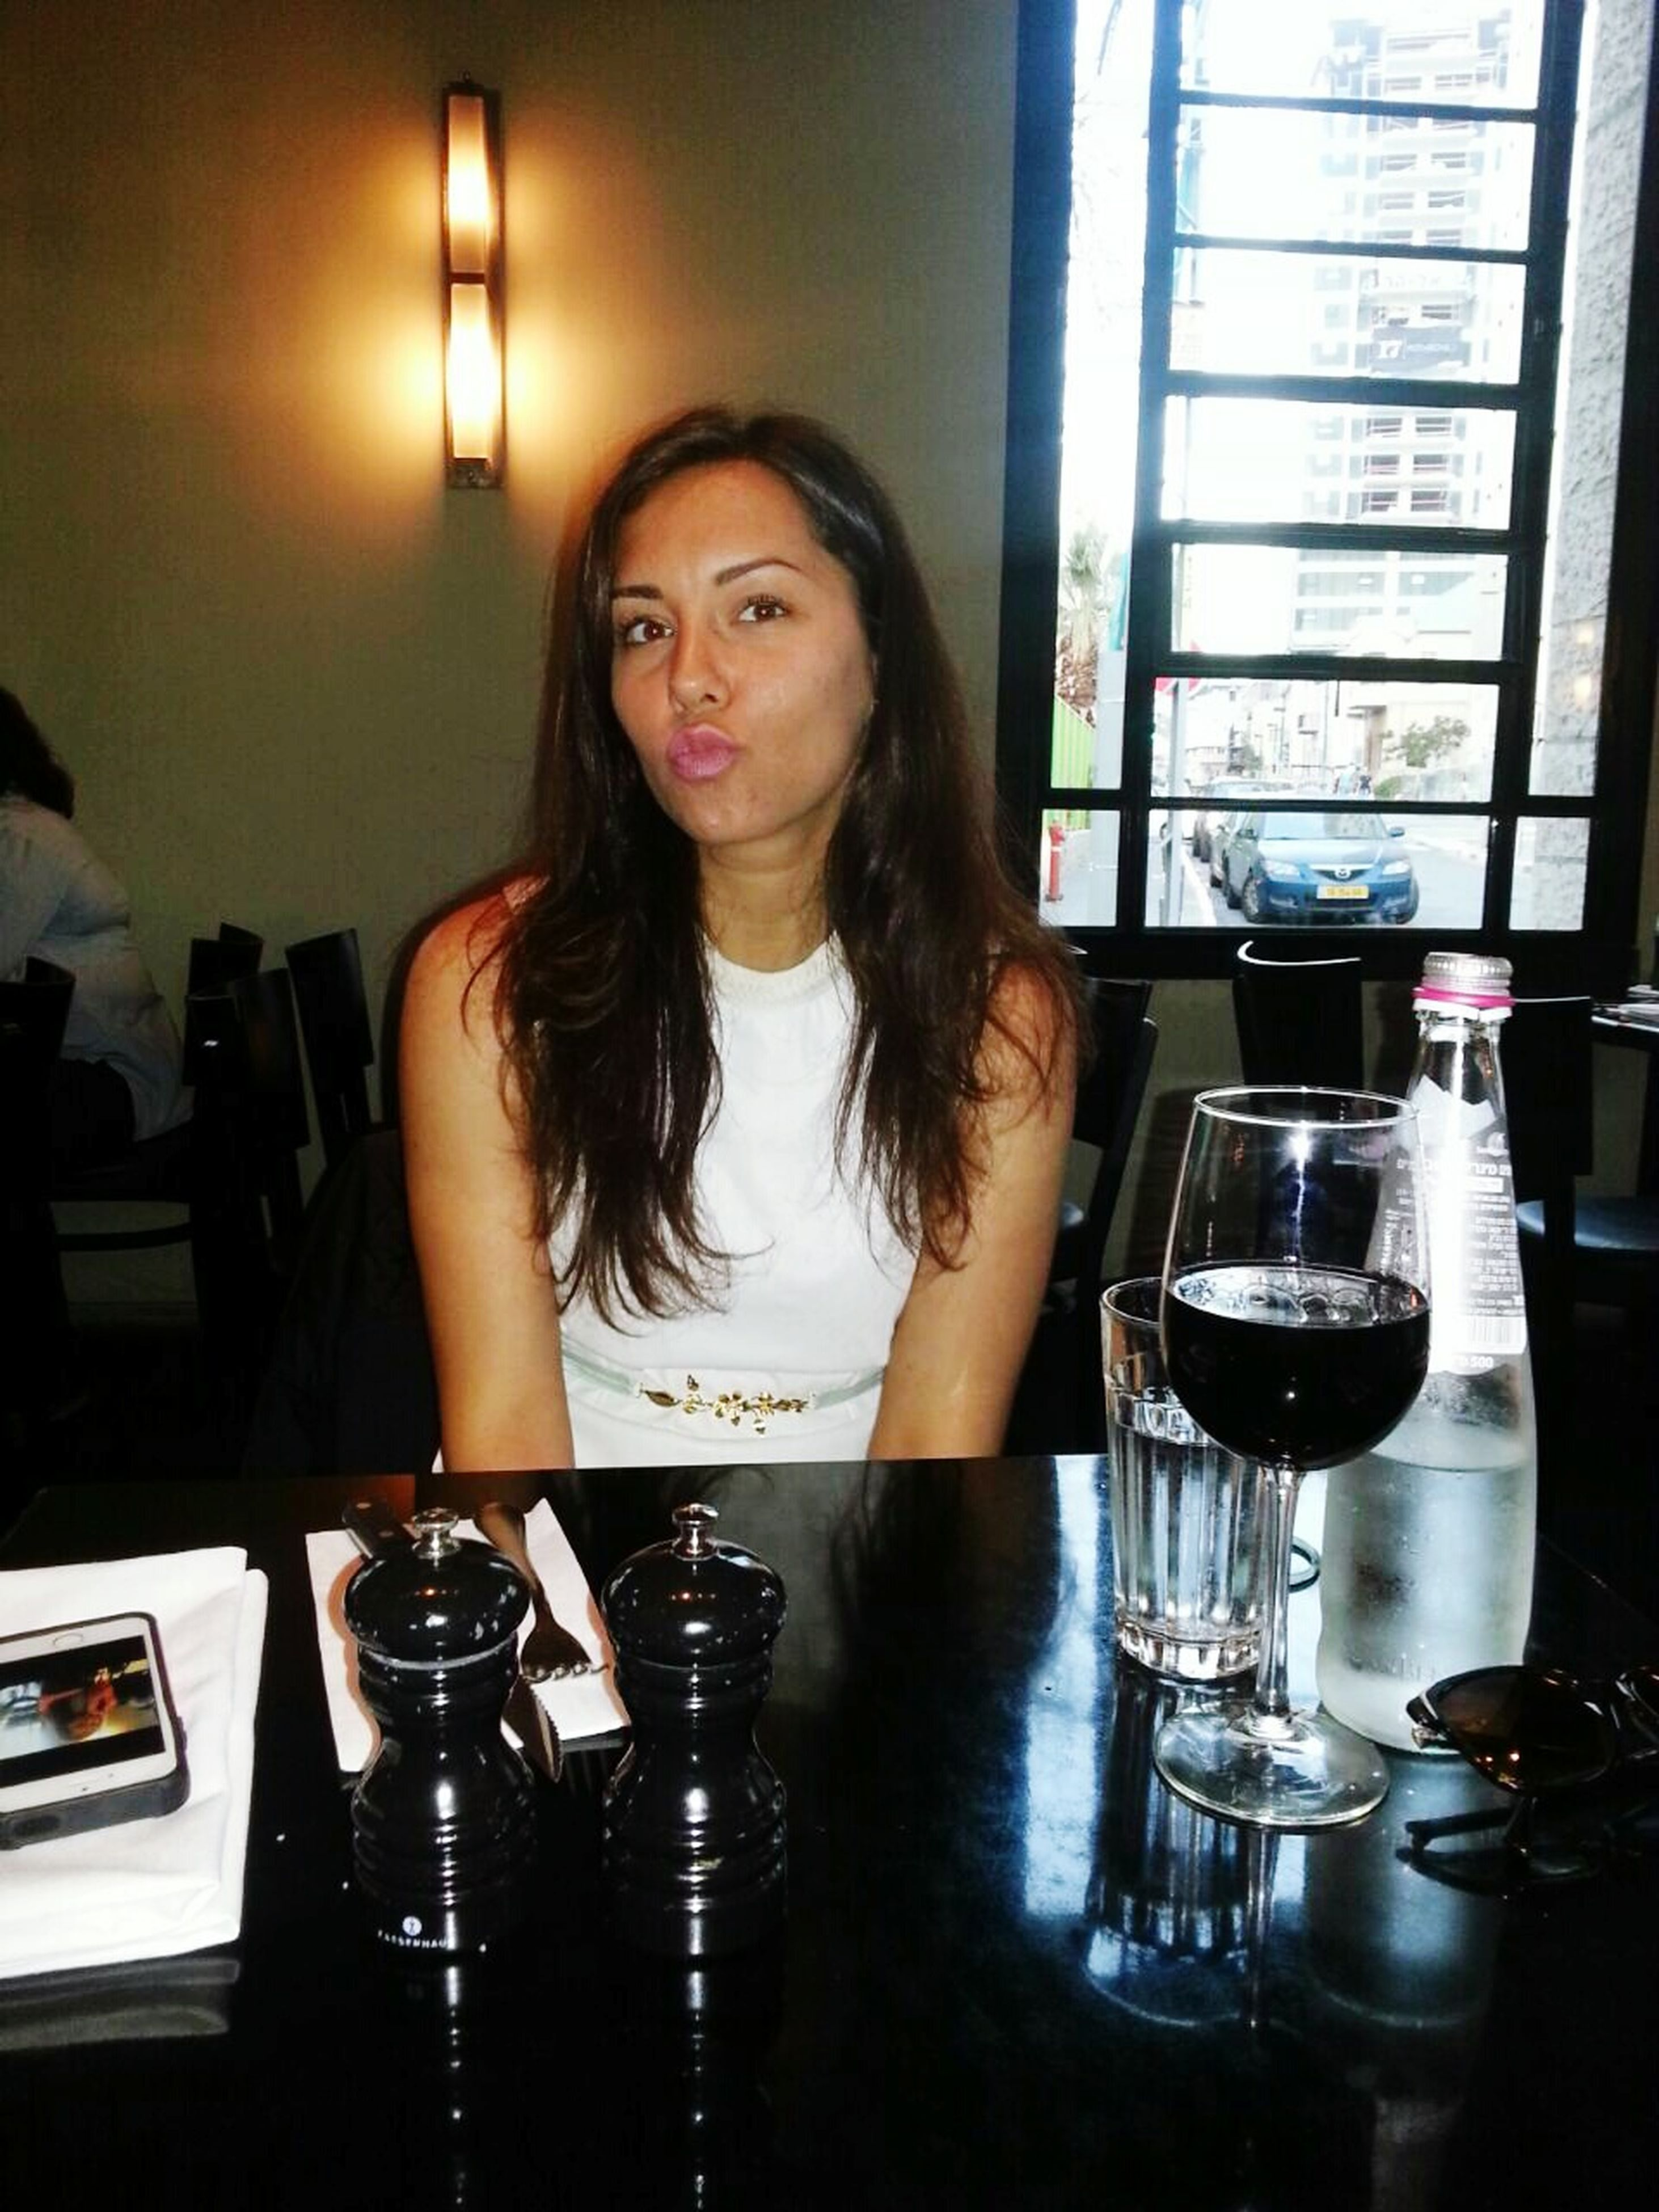 indoors, young adult, lifestyles, person, front view, leisure activity, casual clothing, drink, young women, looking at camera, food and drink, table, waist up, holding, portrait, sitting, wireless technology, restaurant